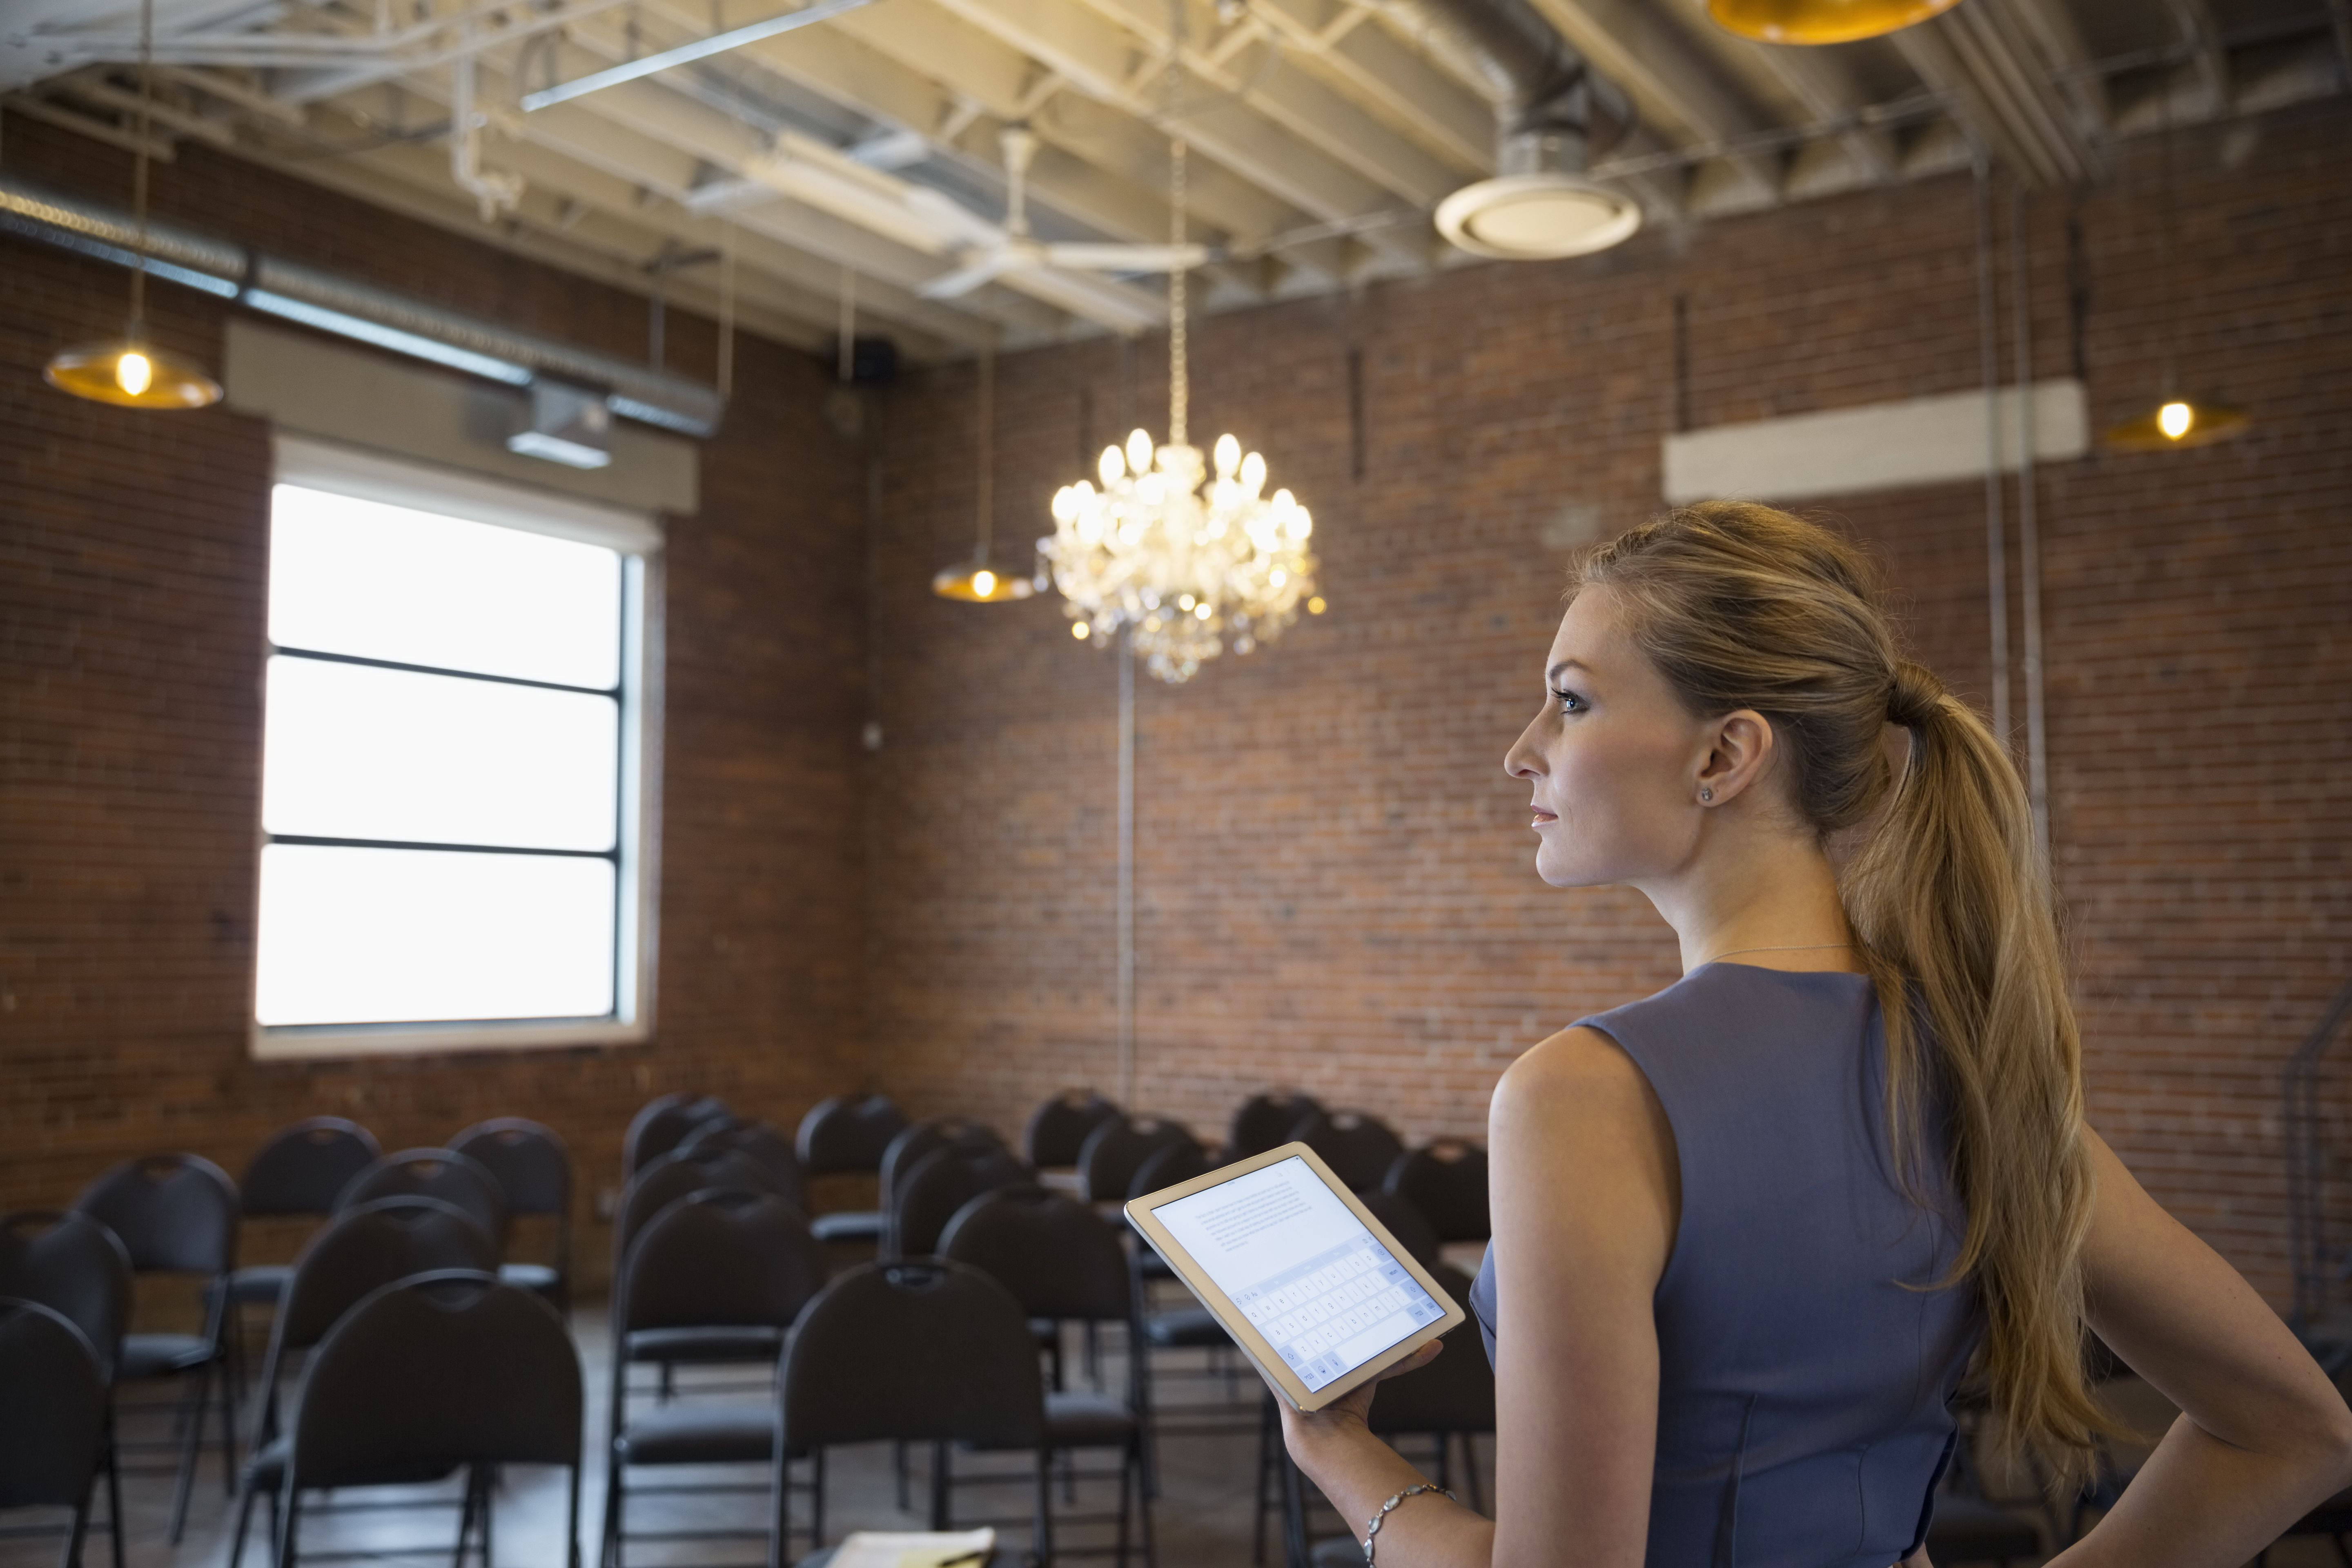 Ambitious businesswoman with digital tablet in conference room with chandelier